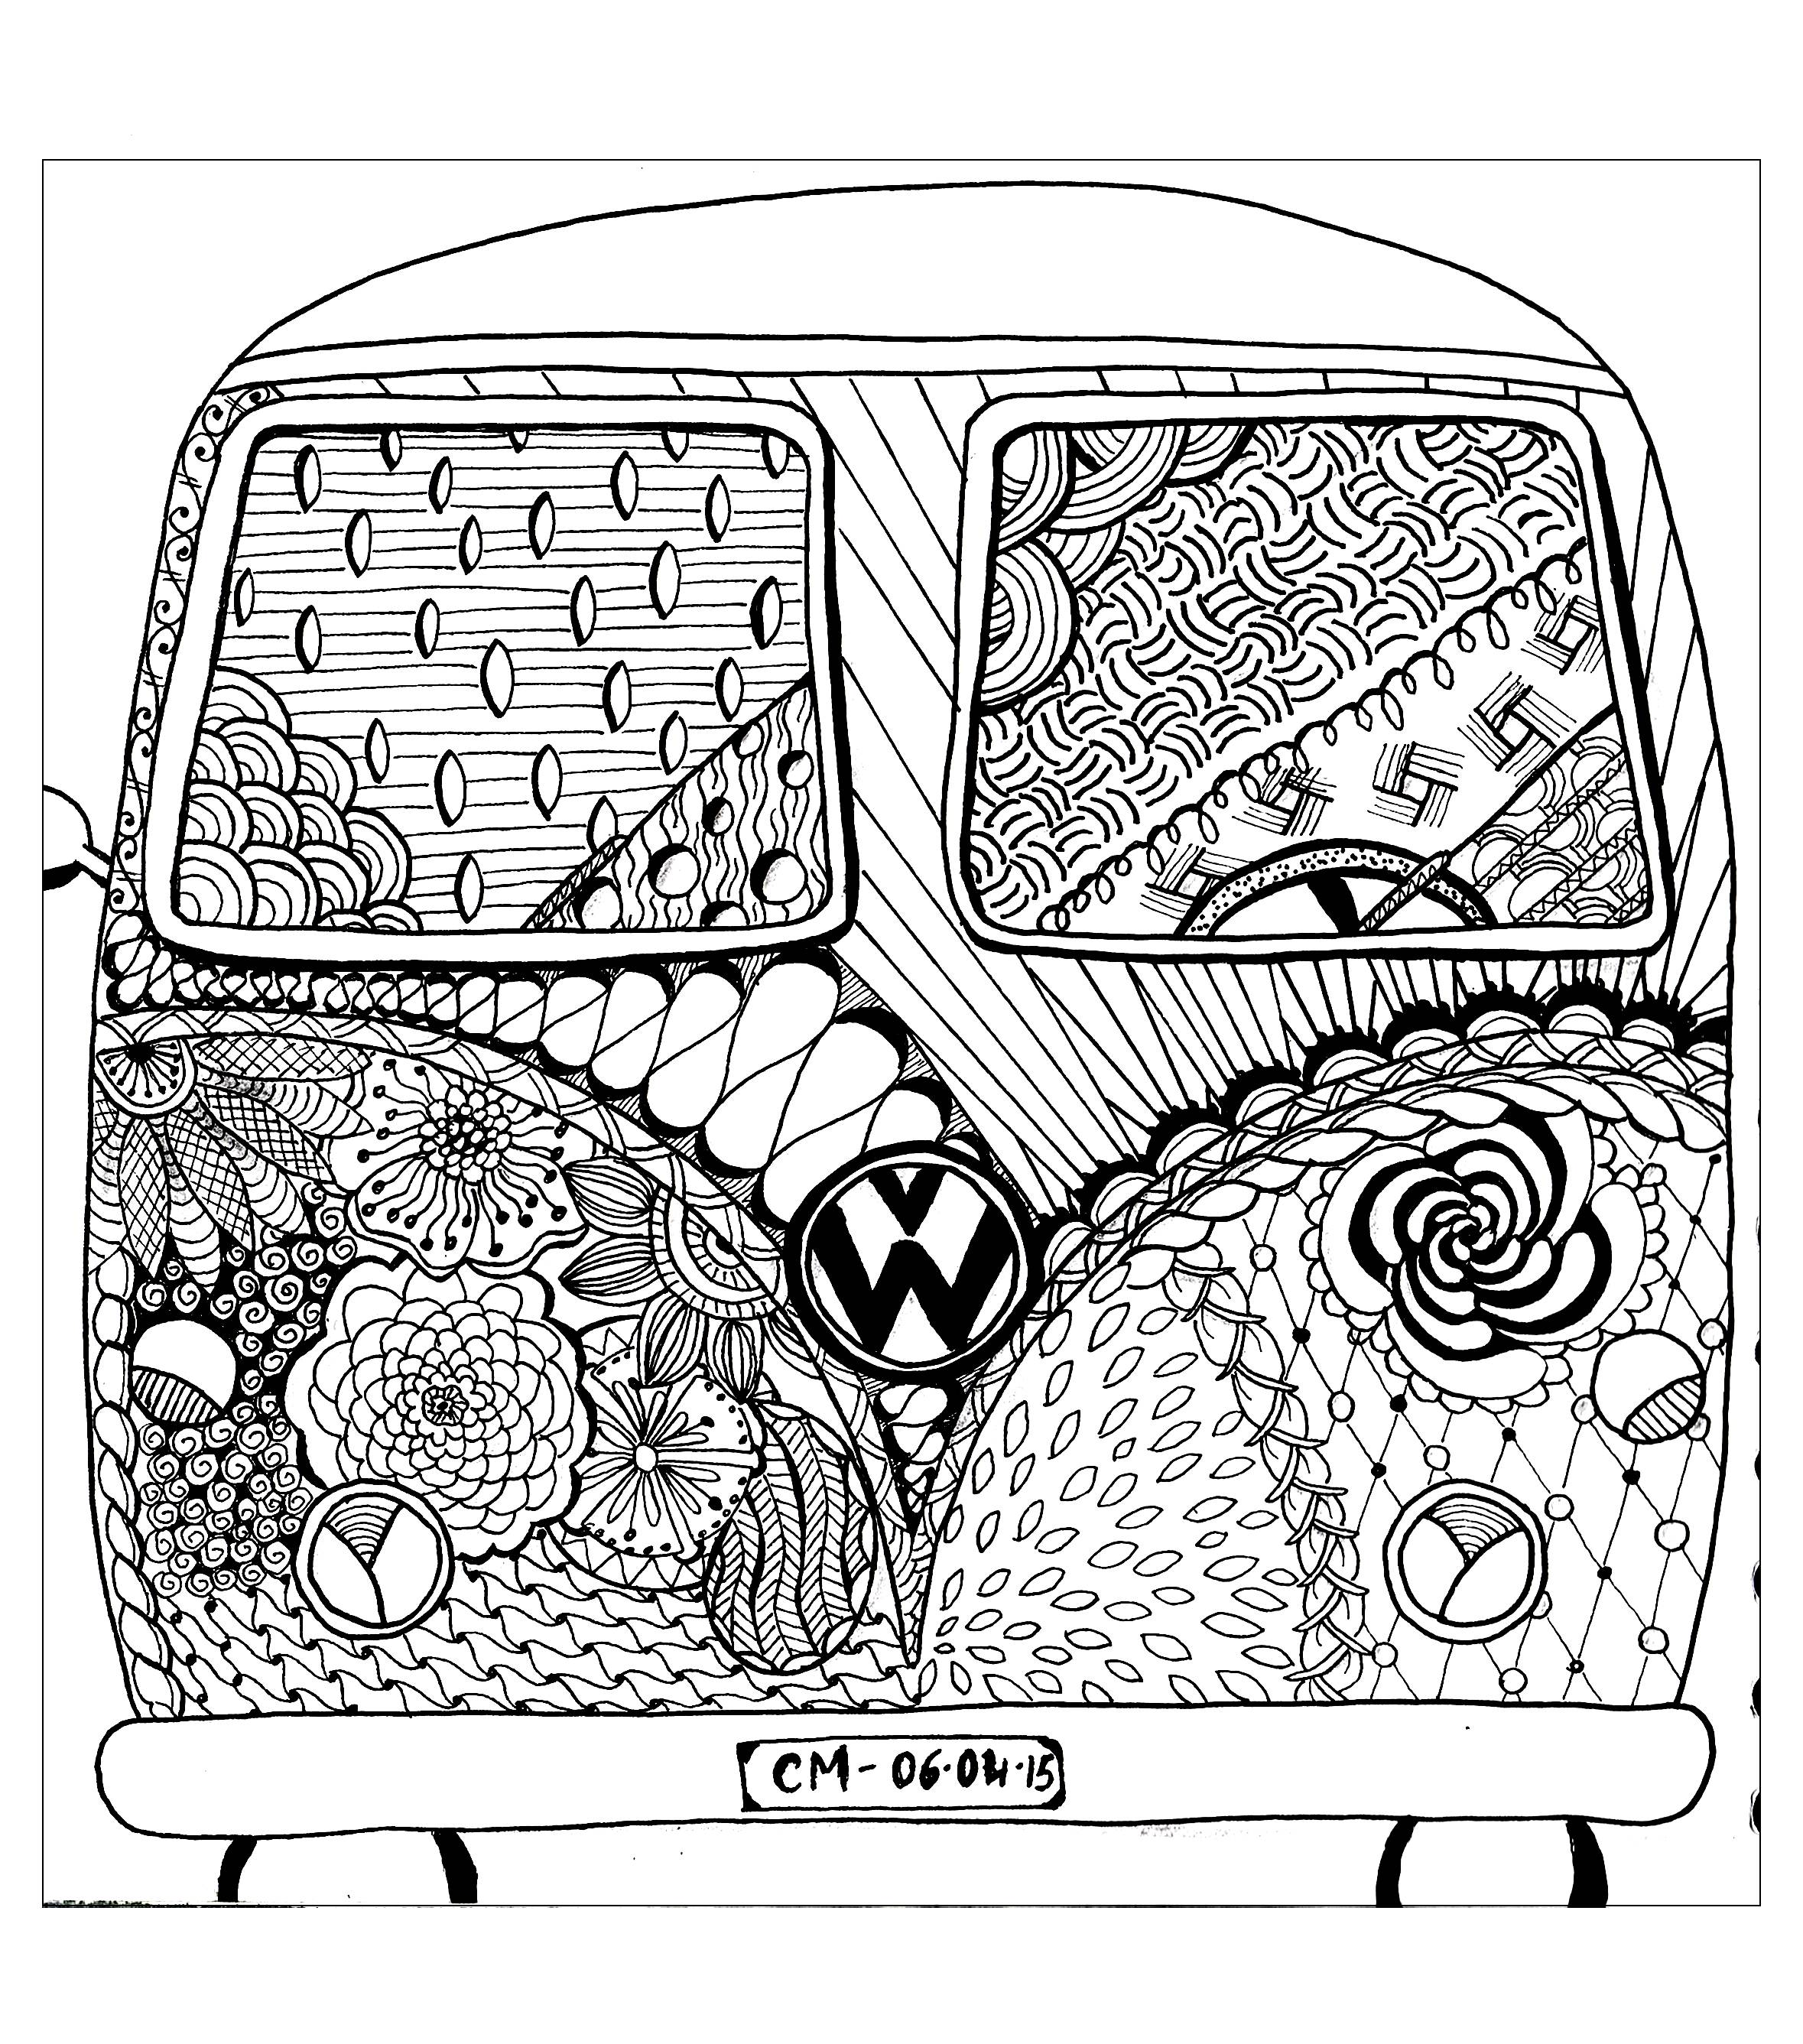 Coloring Pages For Adults - Home | Facebook | 2673x2358